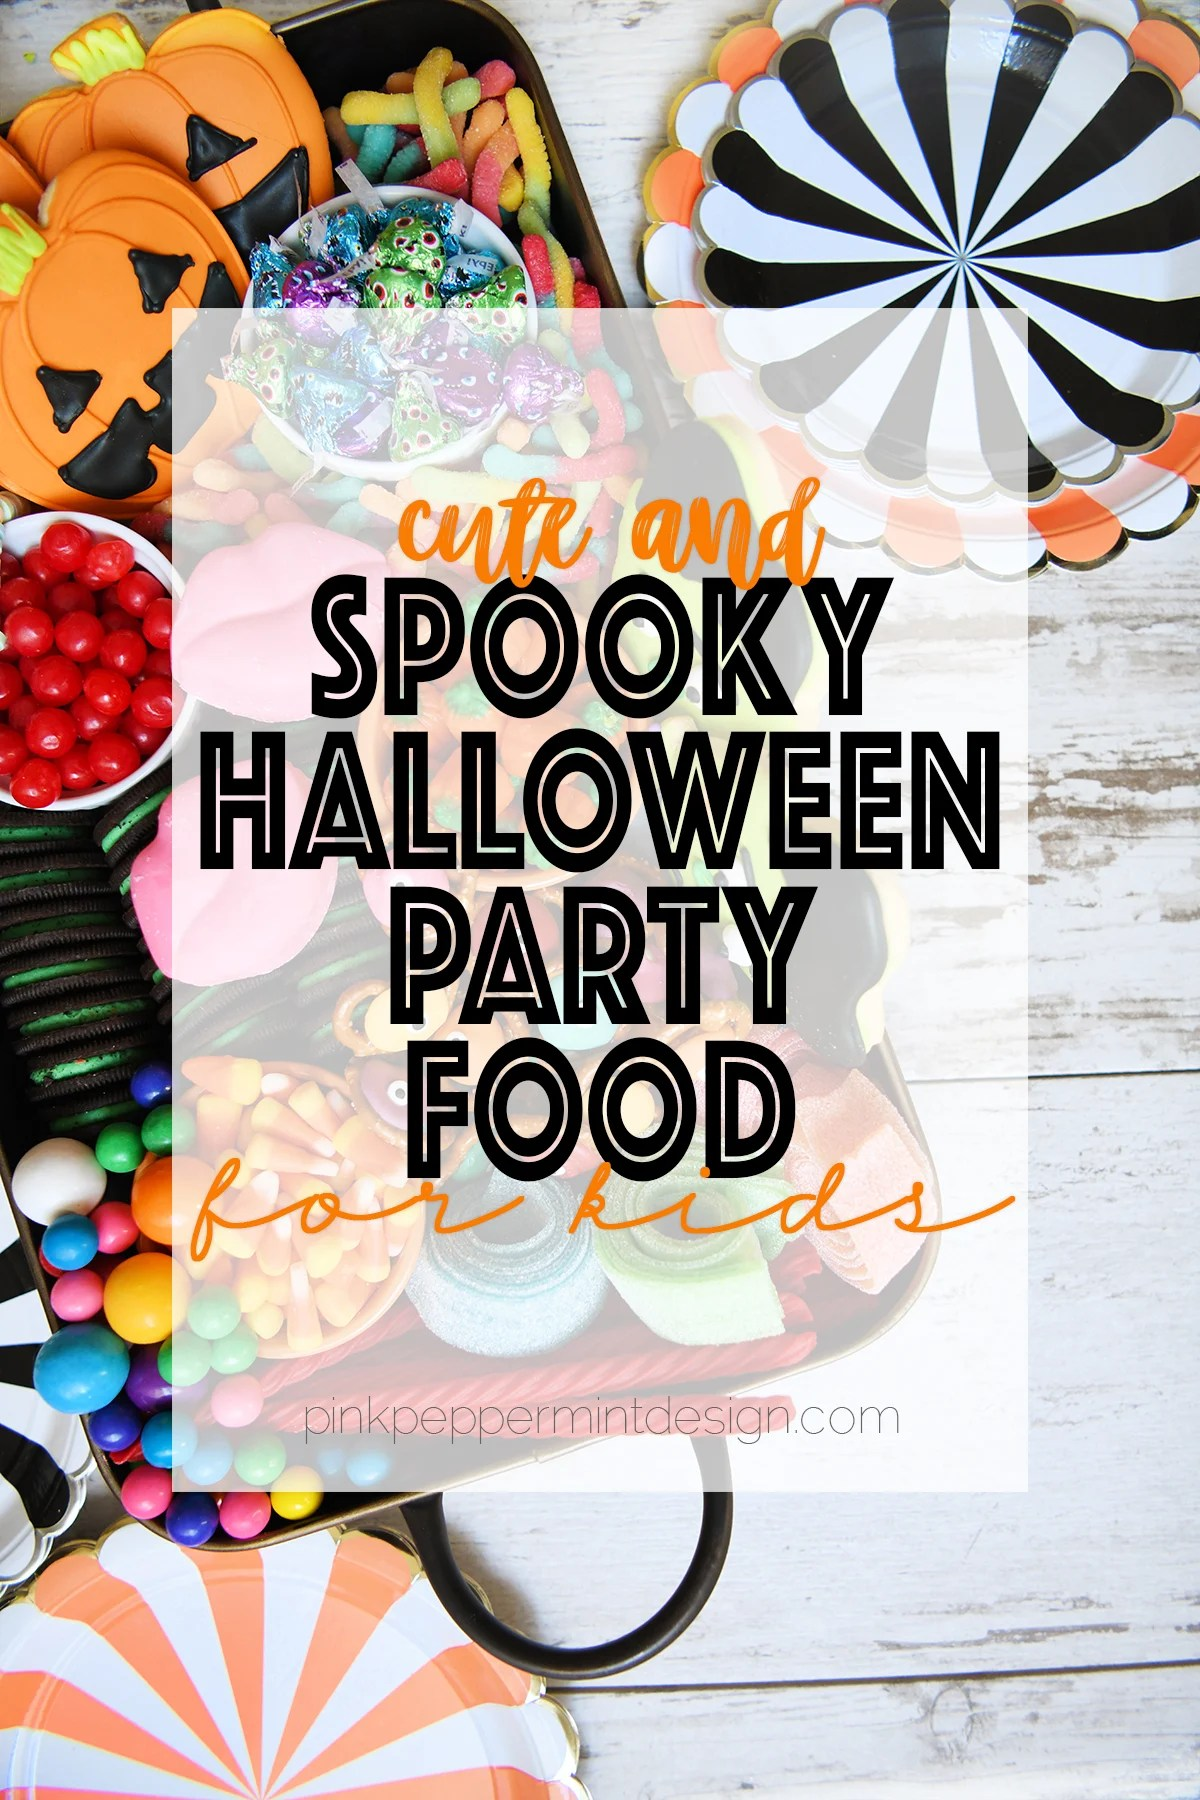 Spooky halloween party food